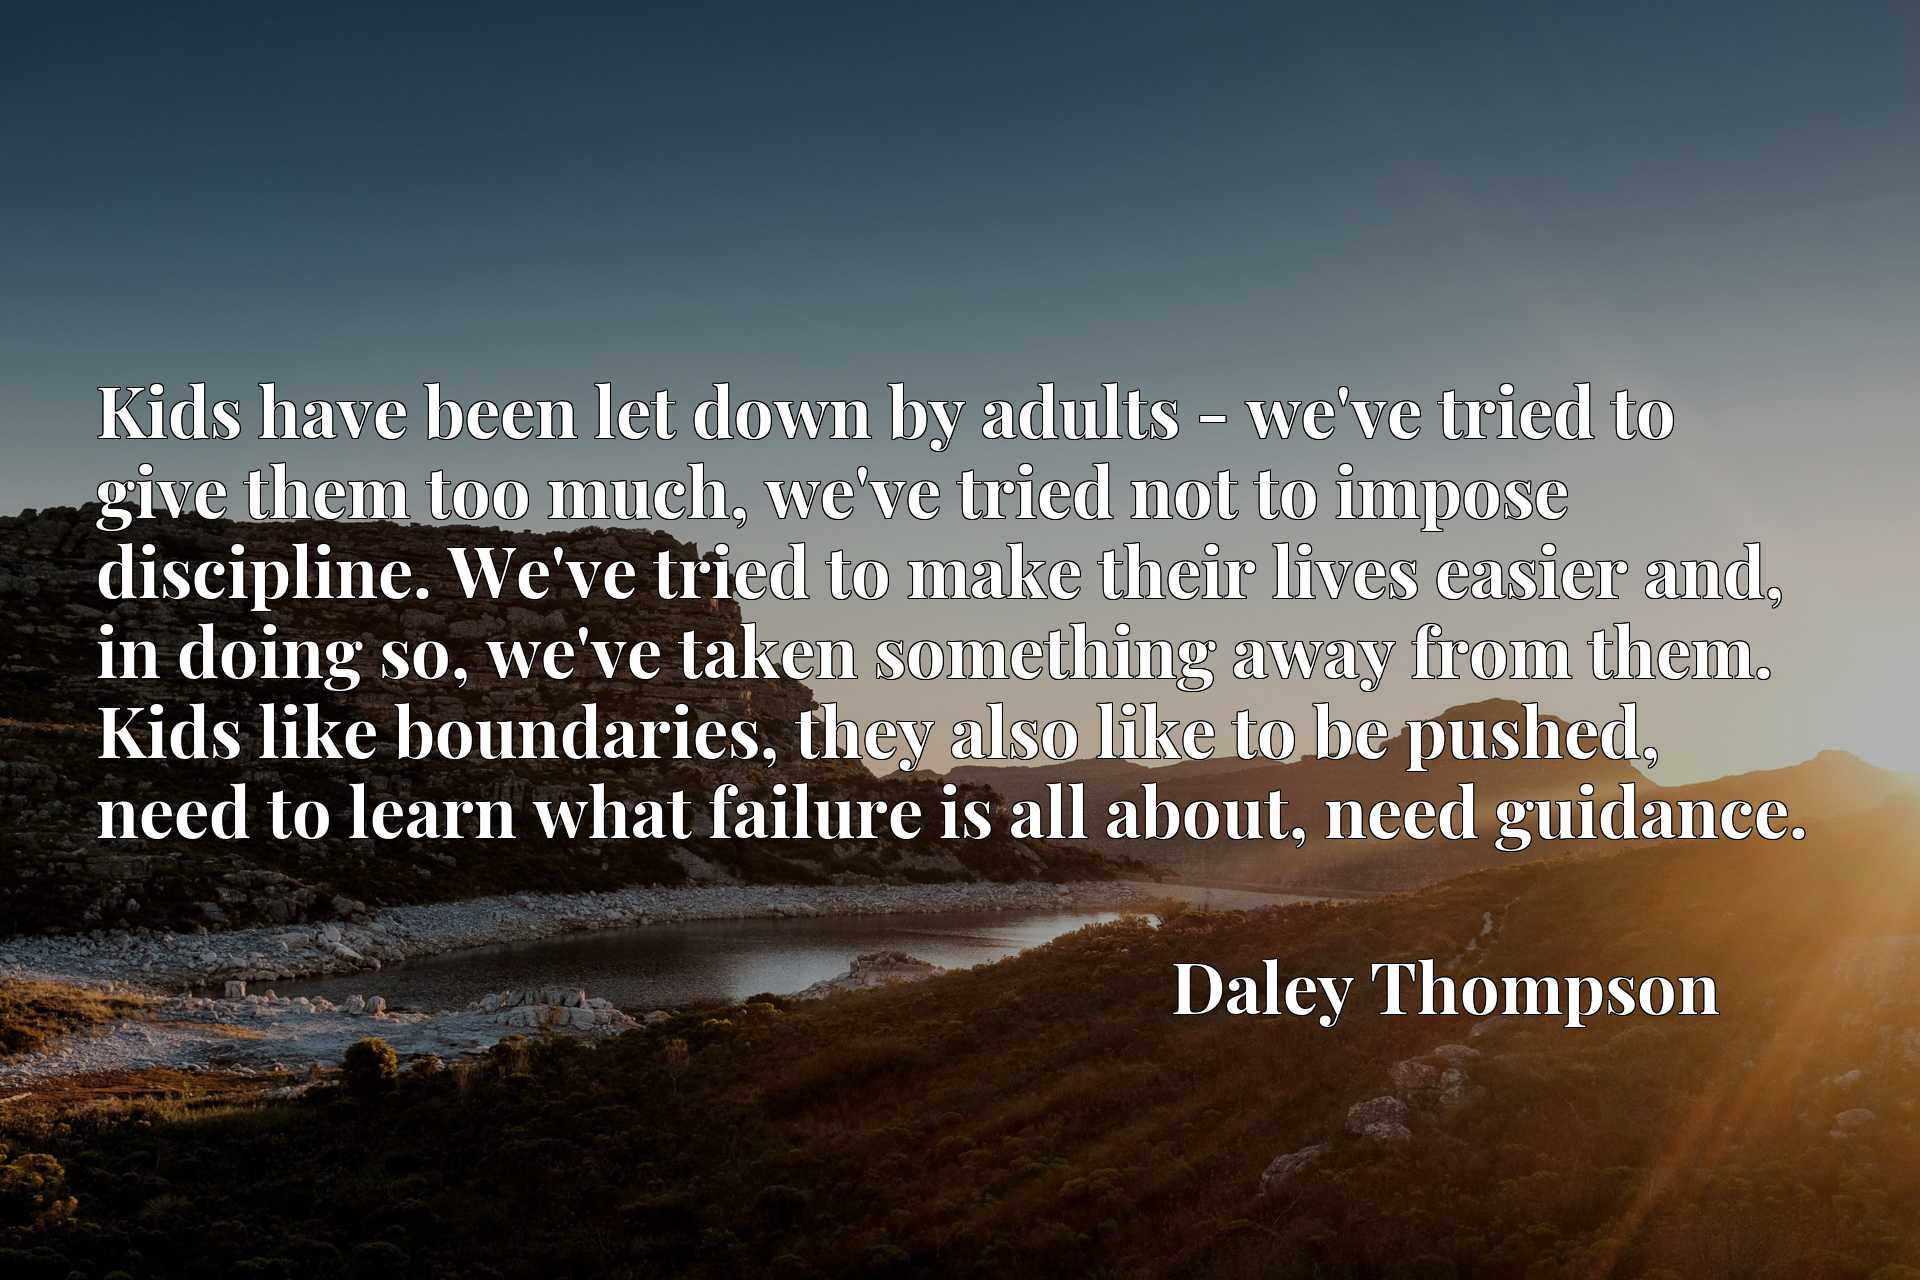 Kids have been let down by adults - we've tried to give them too much, we've tried not to impose discipline. We've tried to make their lives easier and, in doing so, we've taken something away from them. Kids like boundaries, they also like to be pushed, need to learn what failure is all about, need guidance.